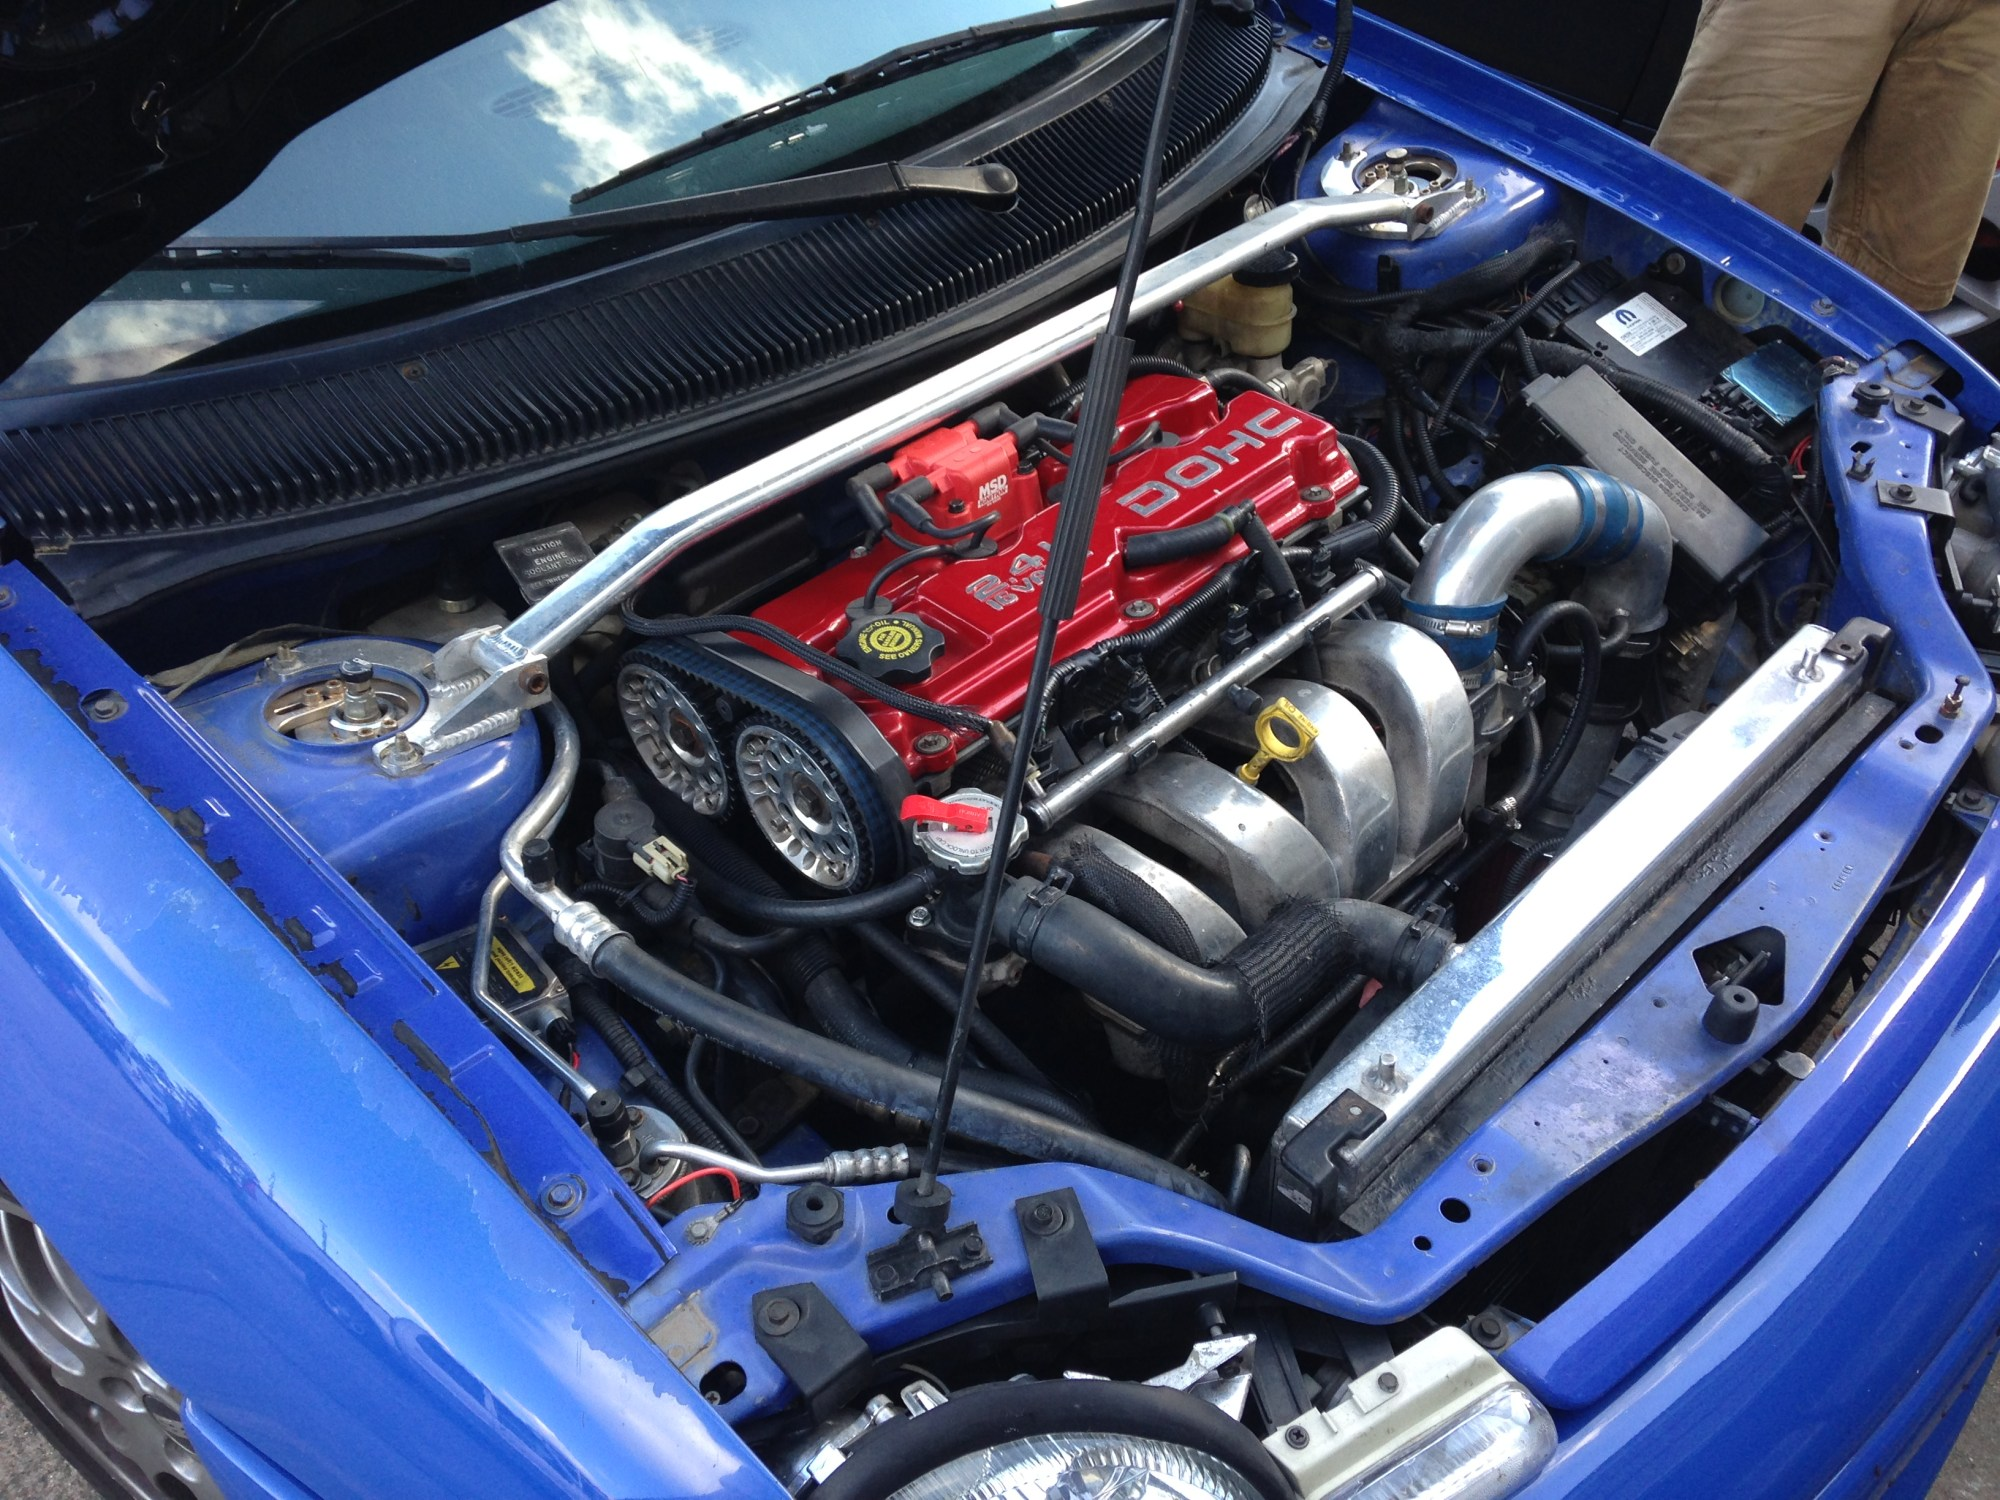 hight resolution of 97 dodge stratus engine by dodge 2 4 dohc engine diagram dodge stratus